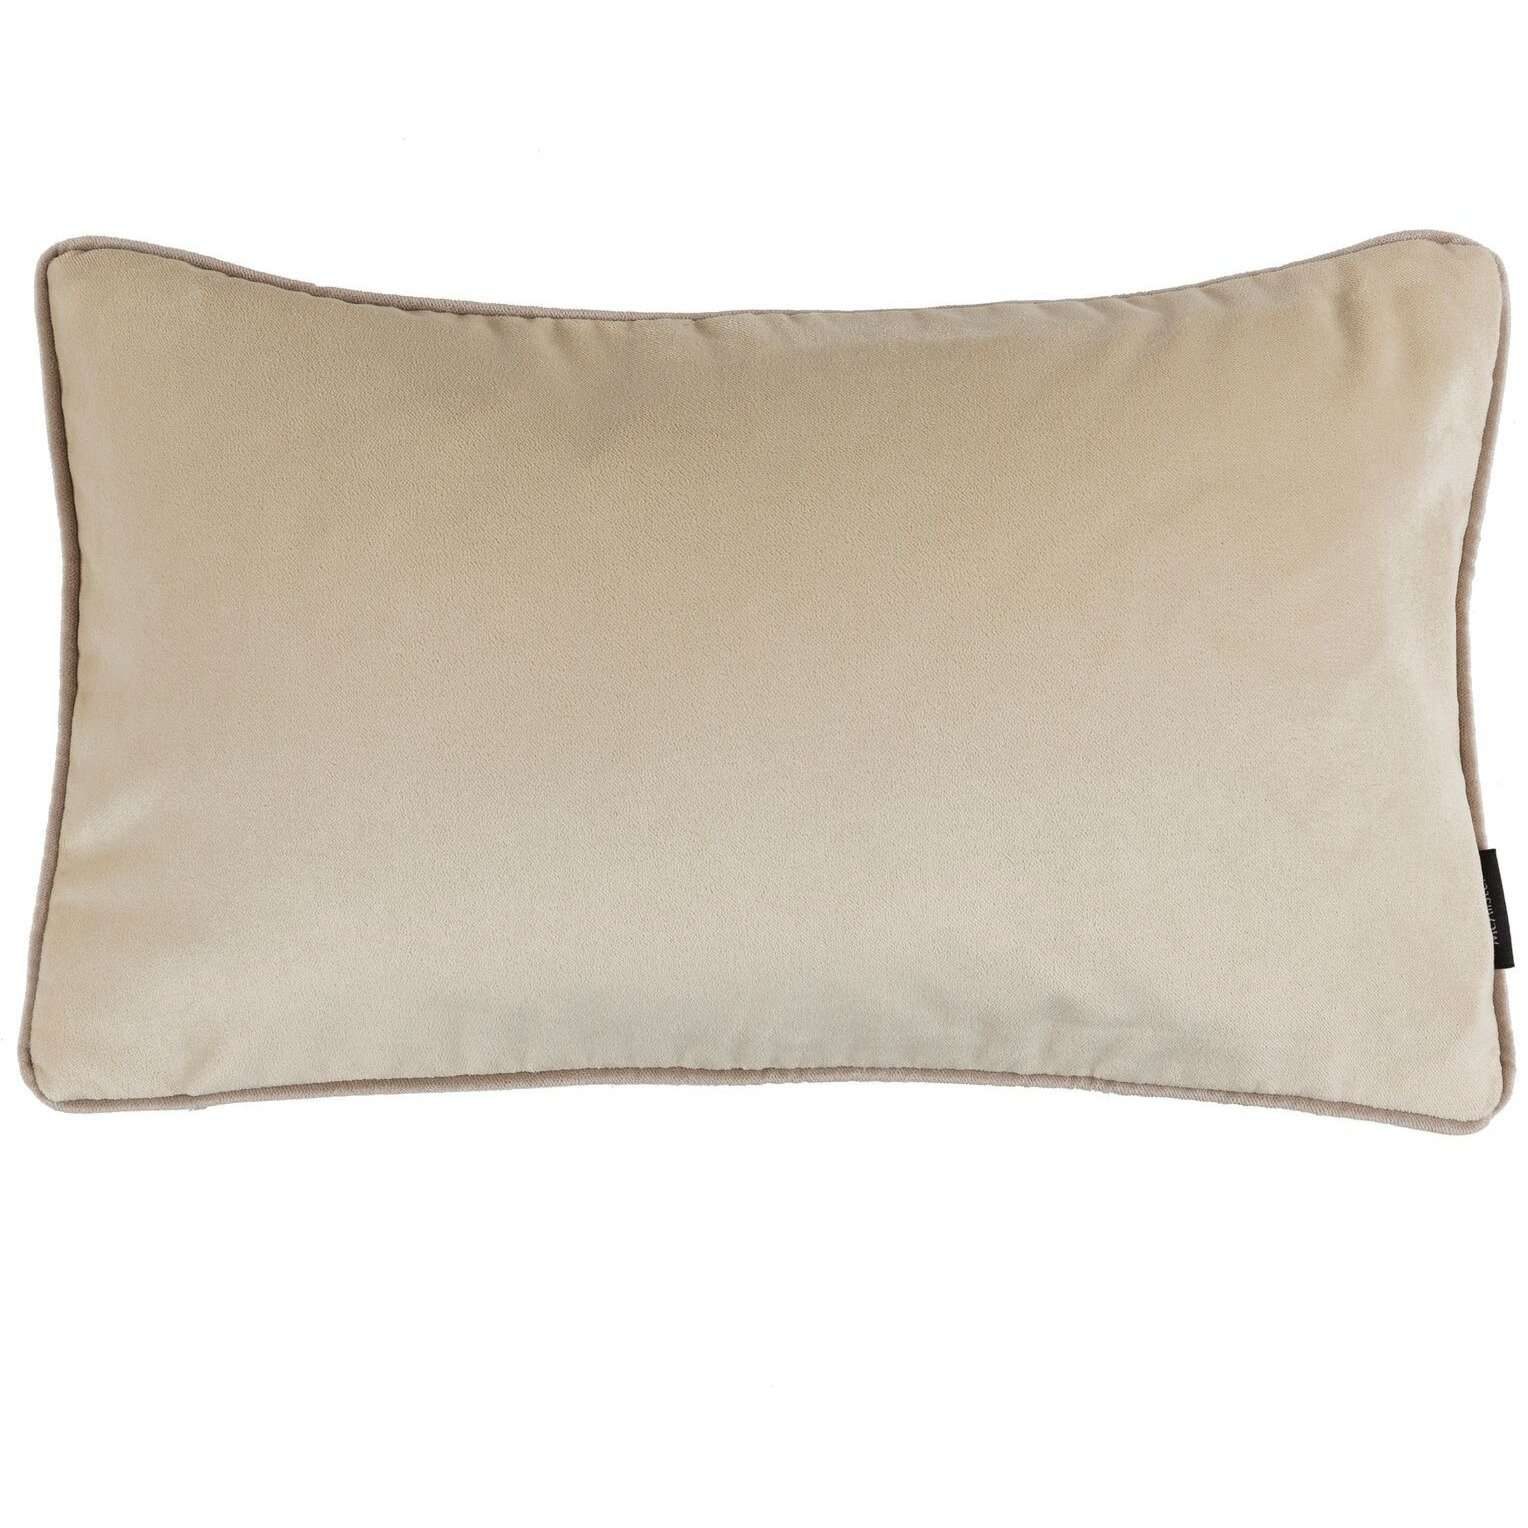 McAlister Textiles Matt Champagne Gold Velvet Cushion Cushions and Covers Cover Only 50cm x 30cm